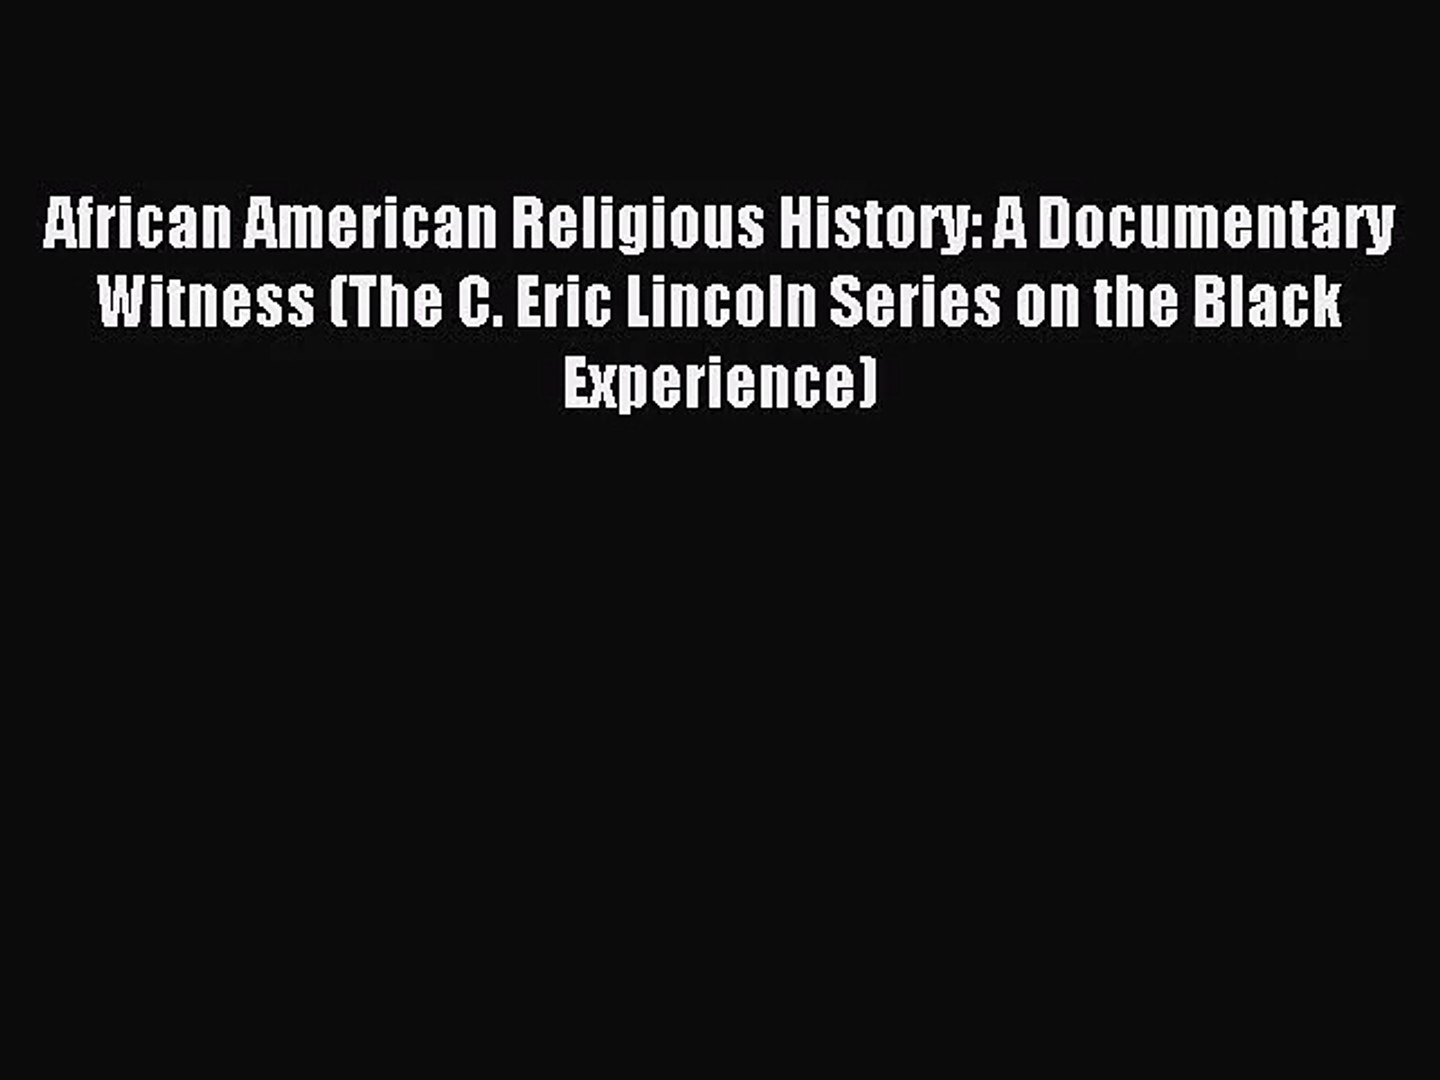 (PDF Download) African American Religious History: A Documentary Witness (The C. Eric Lincoln